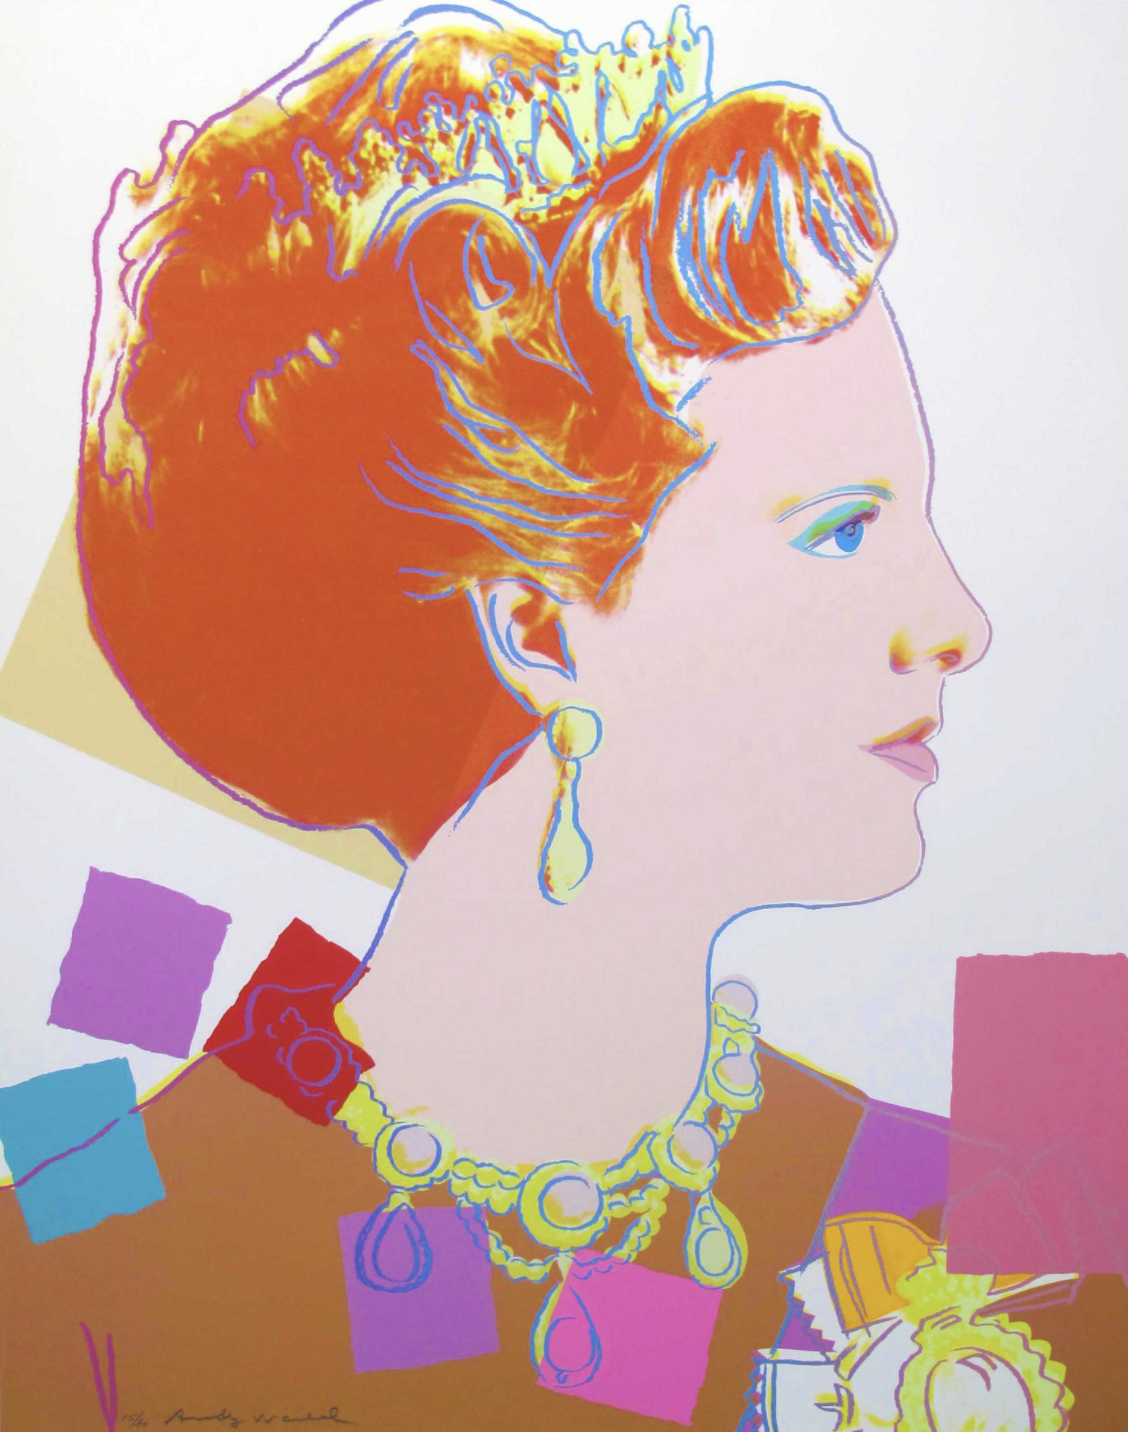 344 Queen Margrethe II by Andy Warhol